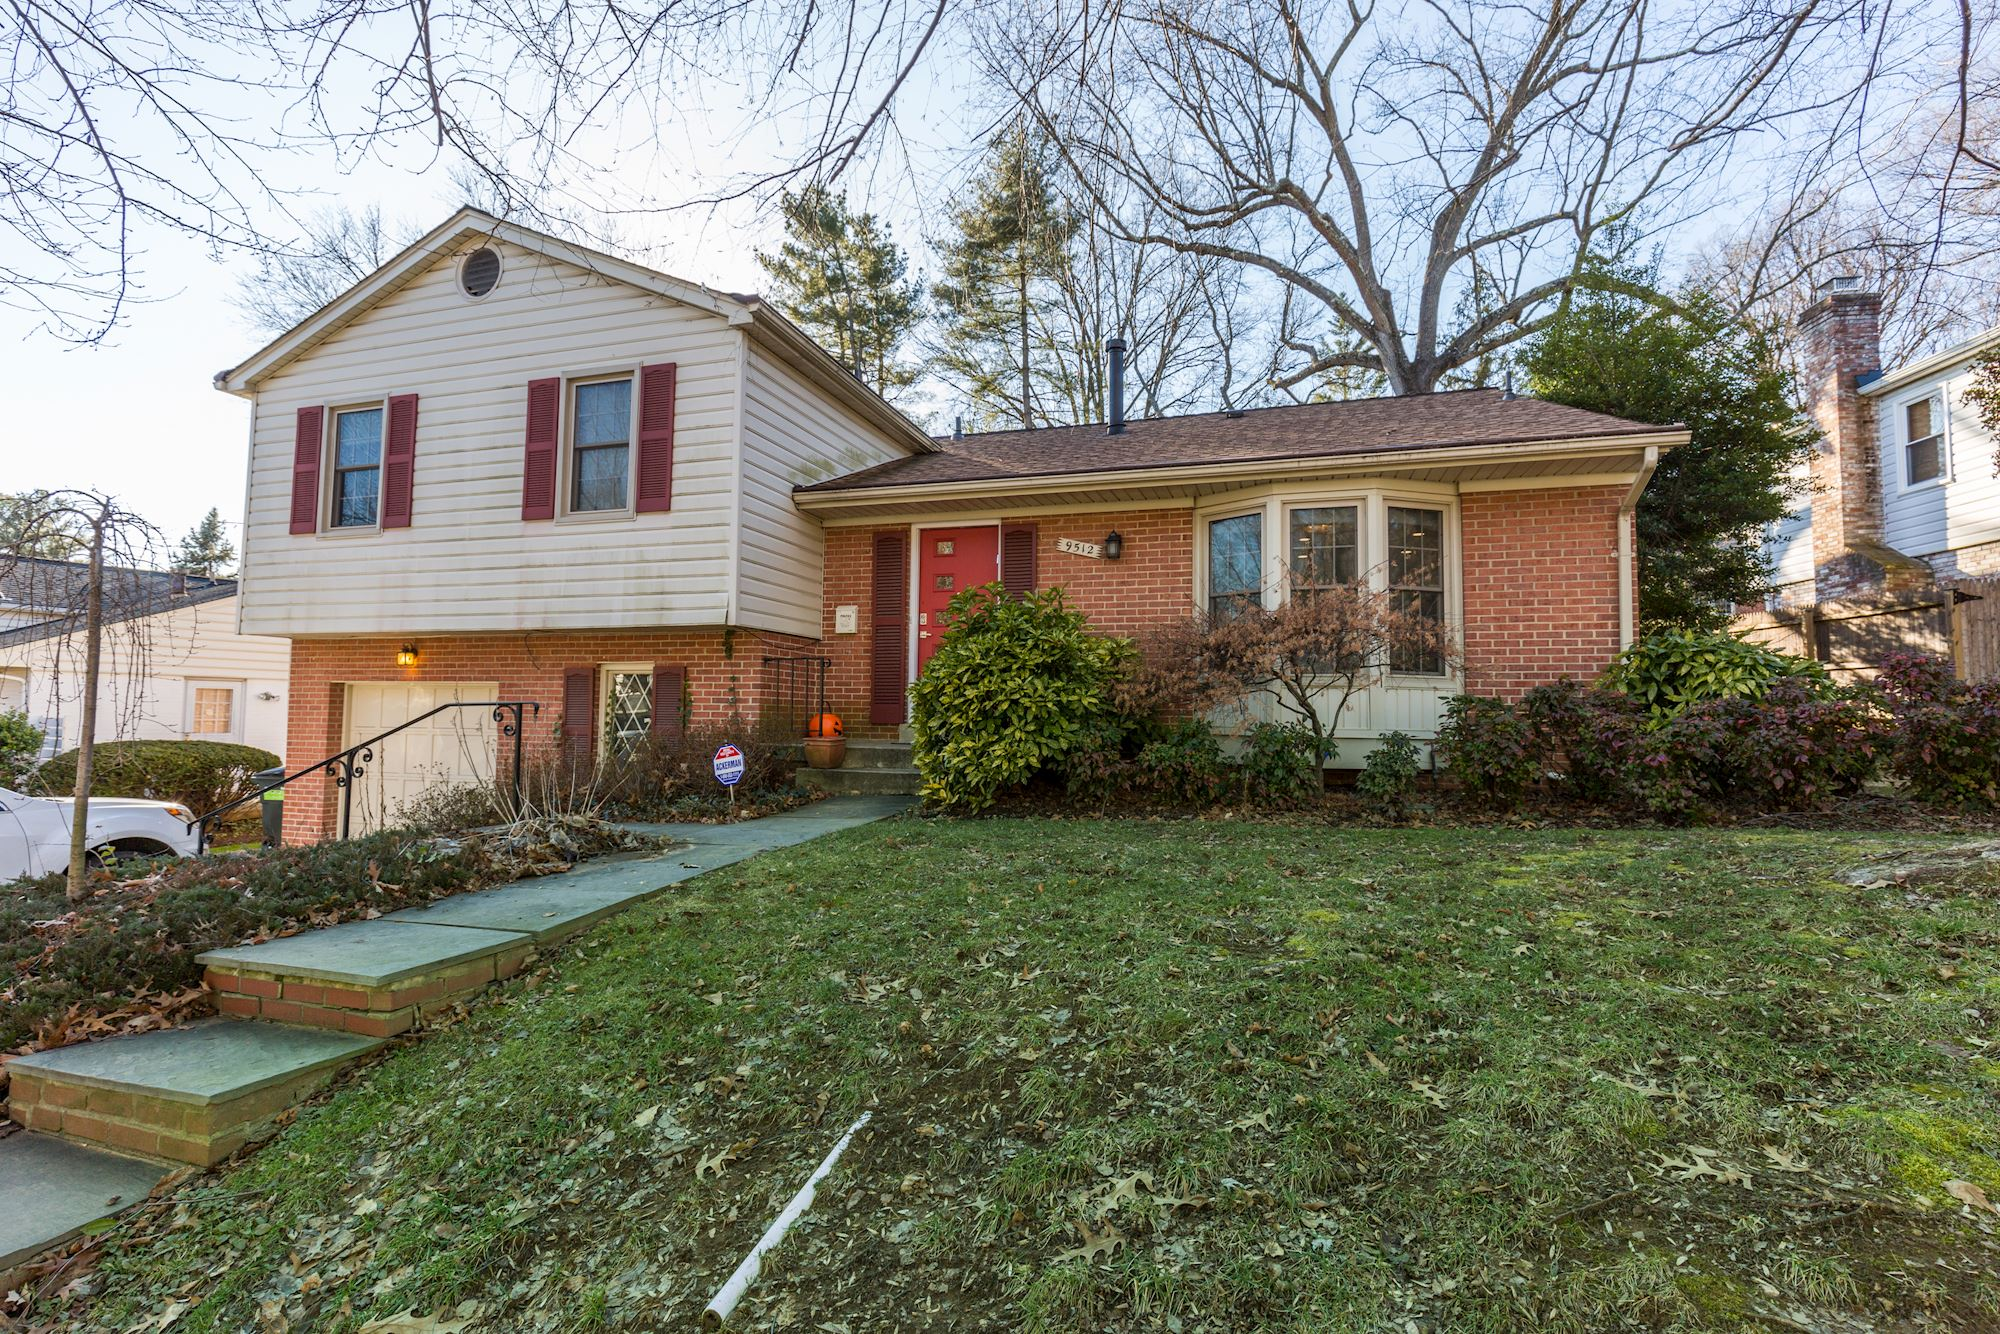 FOR LEASE: 4 BD Newly Renovated Home in Bethesda, MD